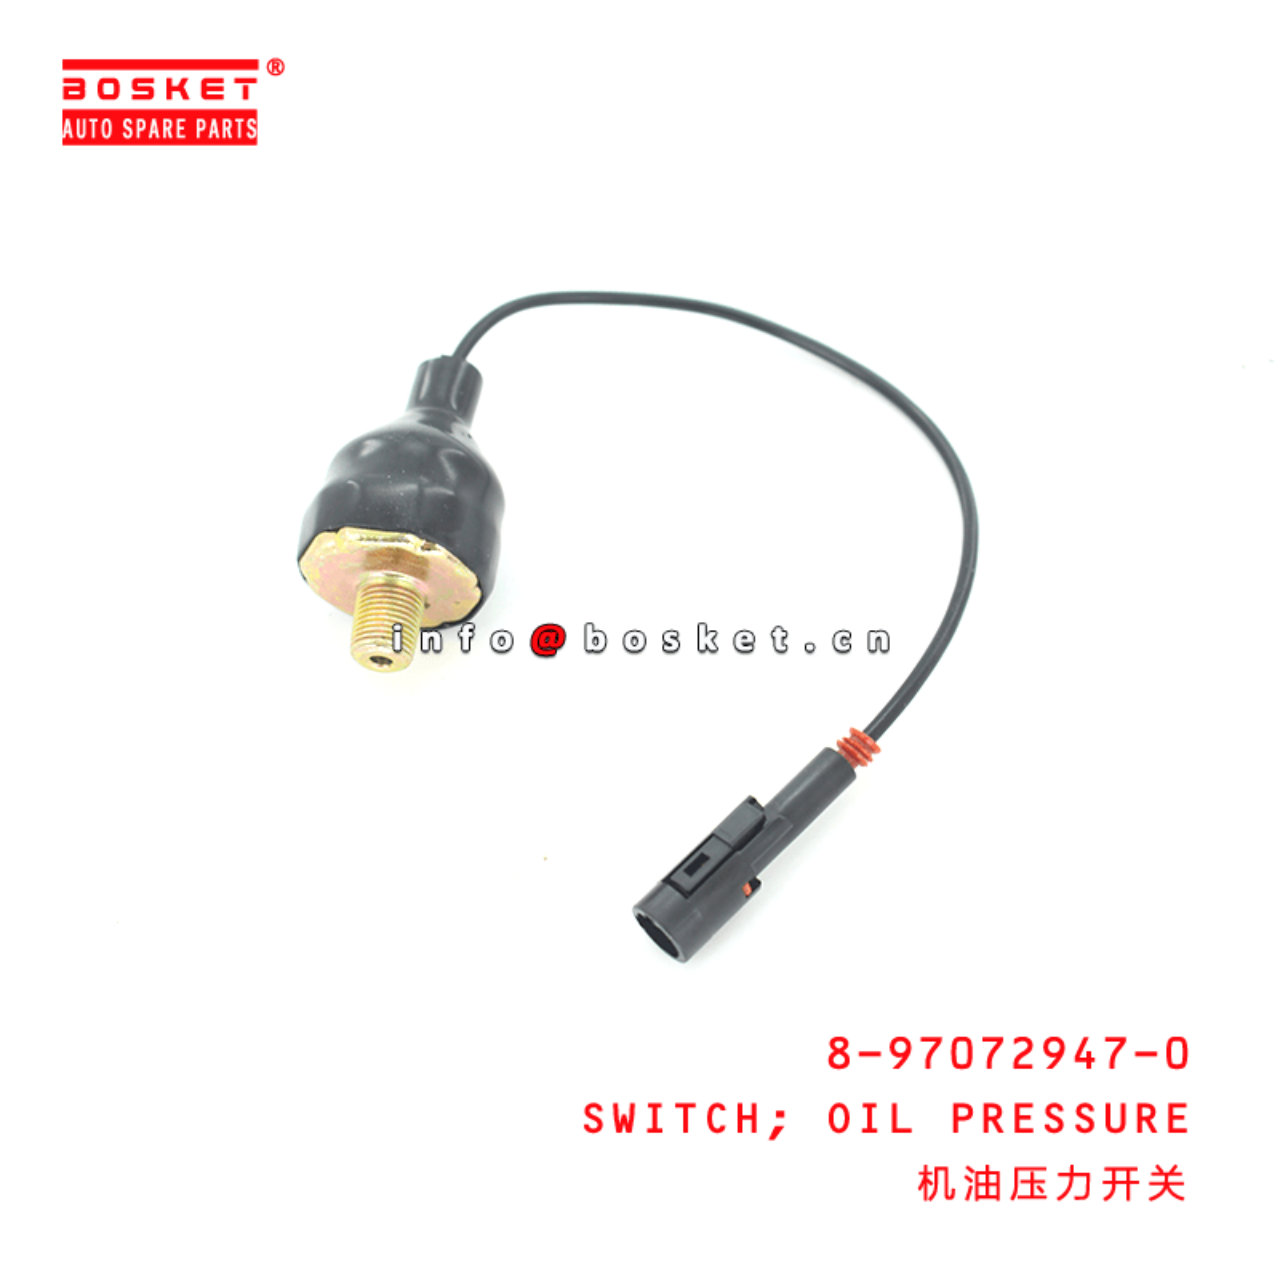 8-97072947-0 Oil Pressure Switch 8970729470 Suitable for ISUZU NKR55 4JB1